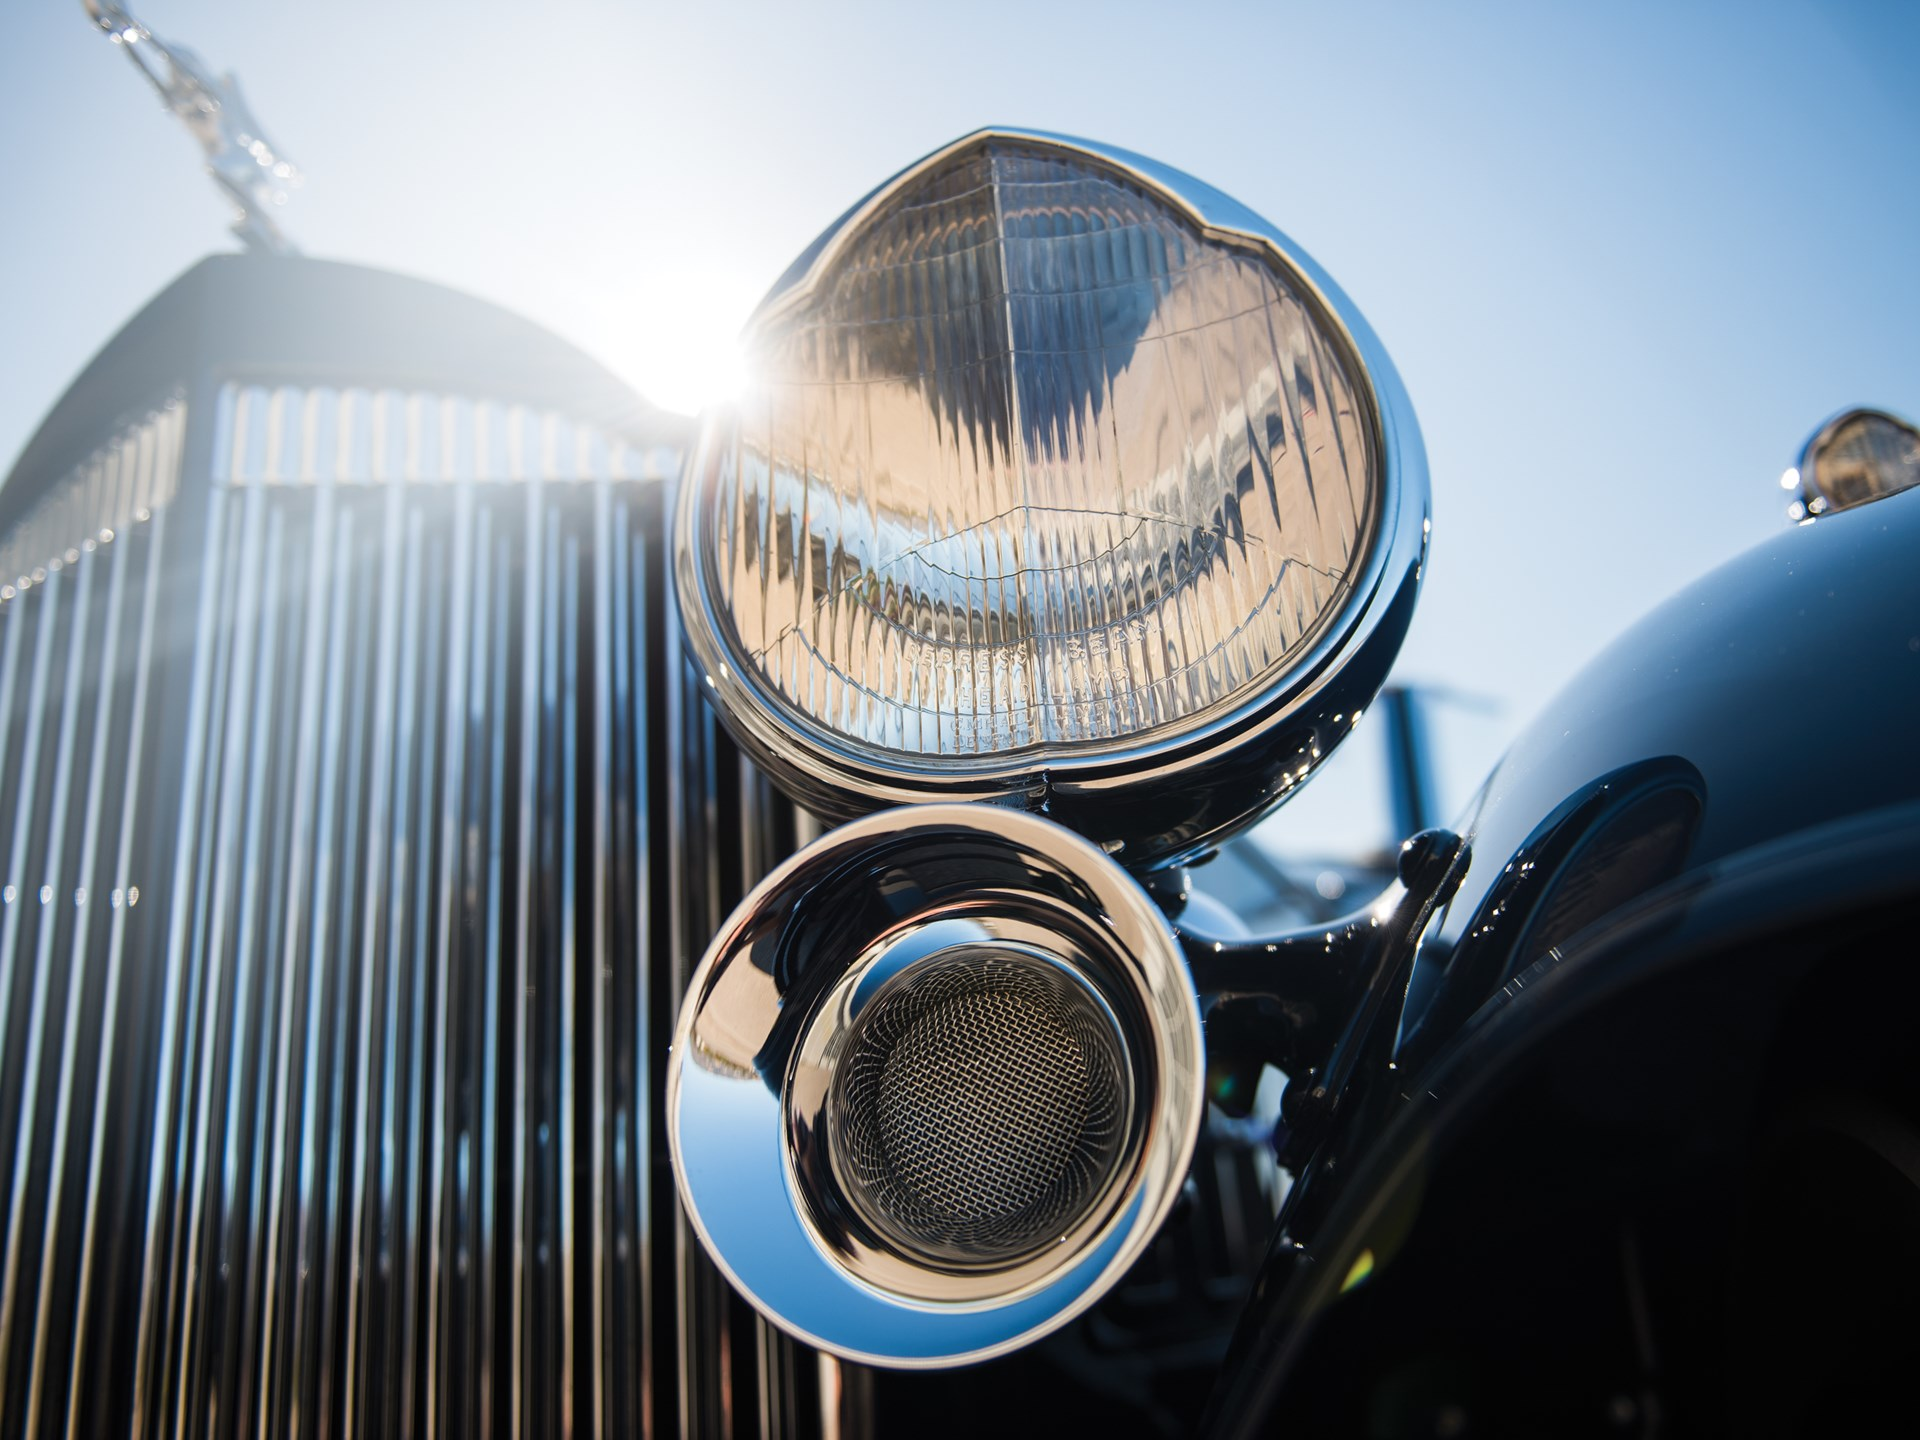 1932 Packard Twin Six Coupe Roadster